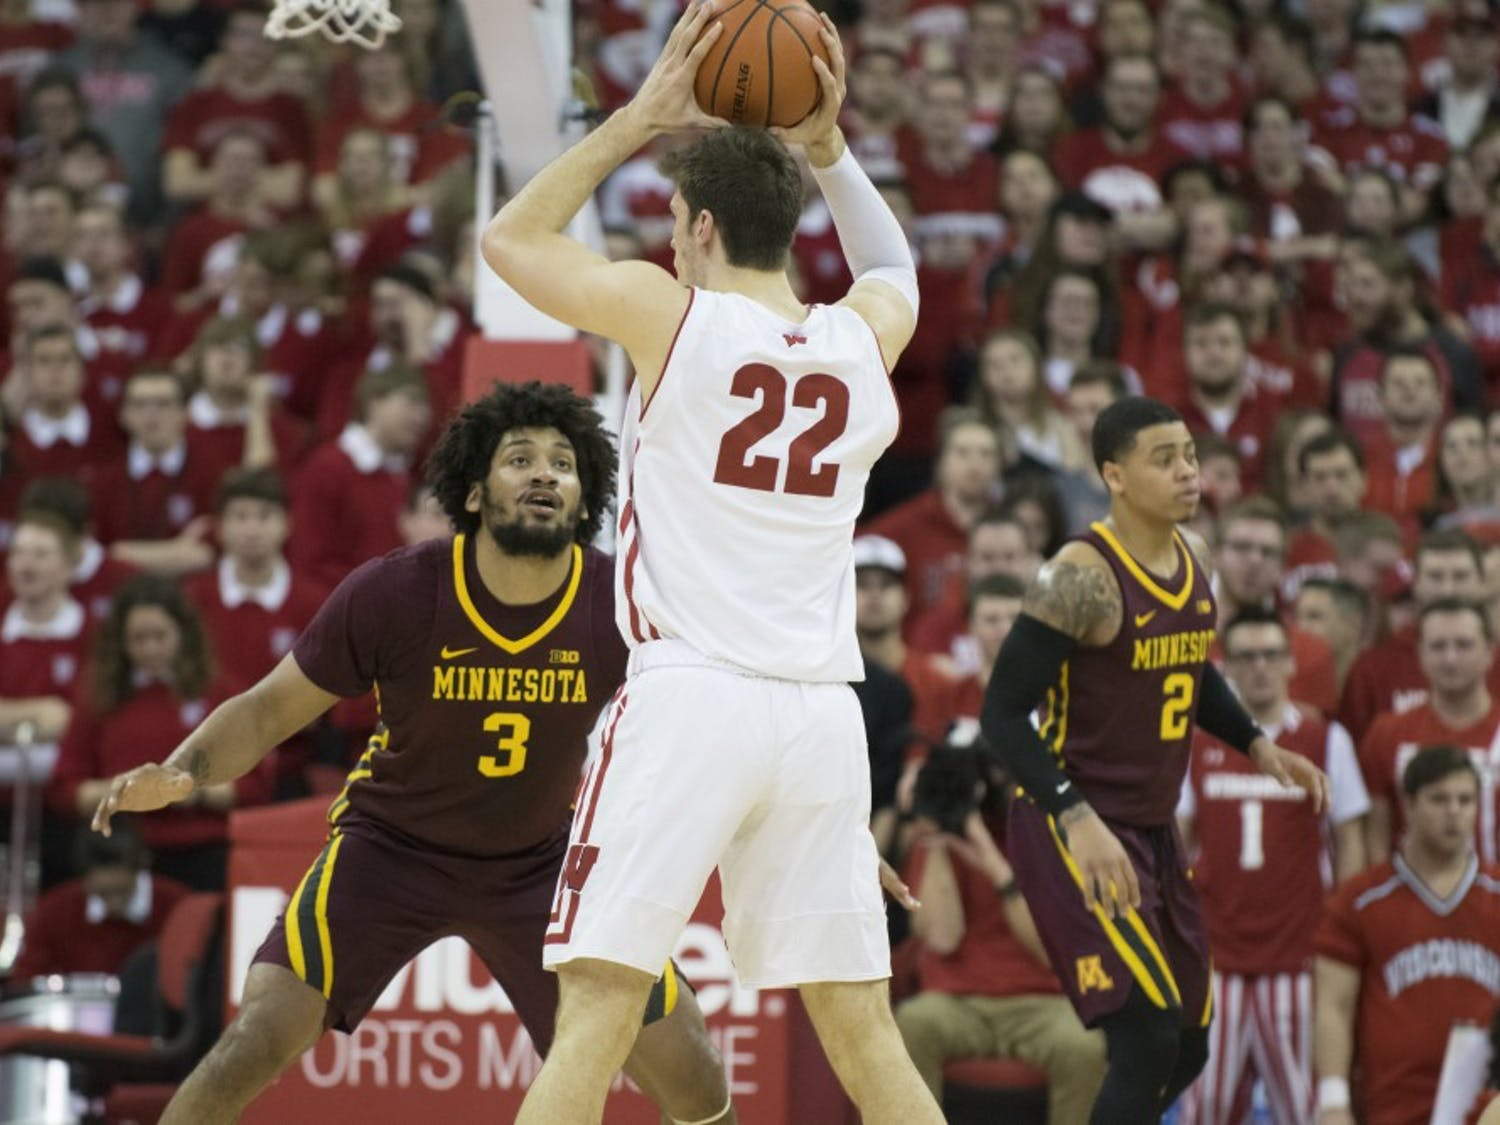 Ethan Happ and the Badgers won their exhibition game against UW-Oshkosh by a score of 82-70.